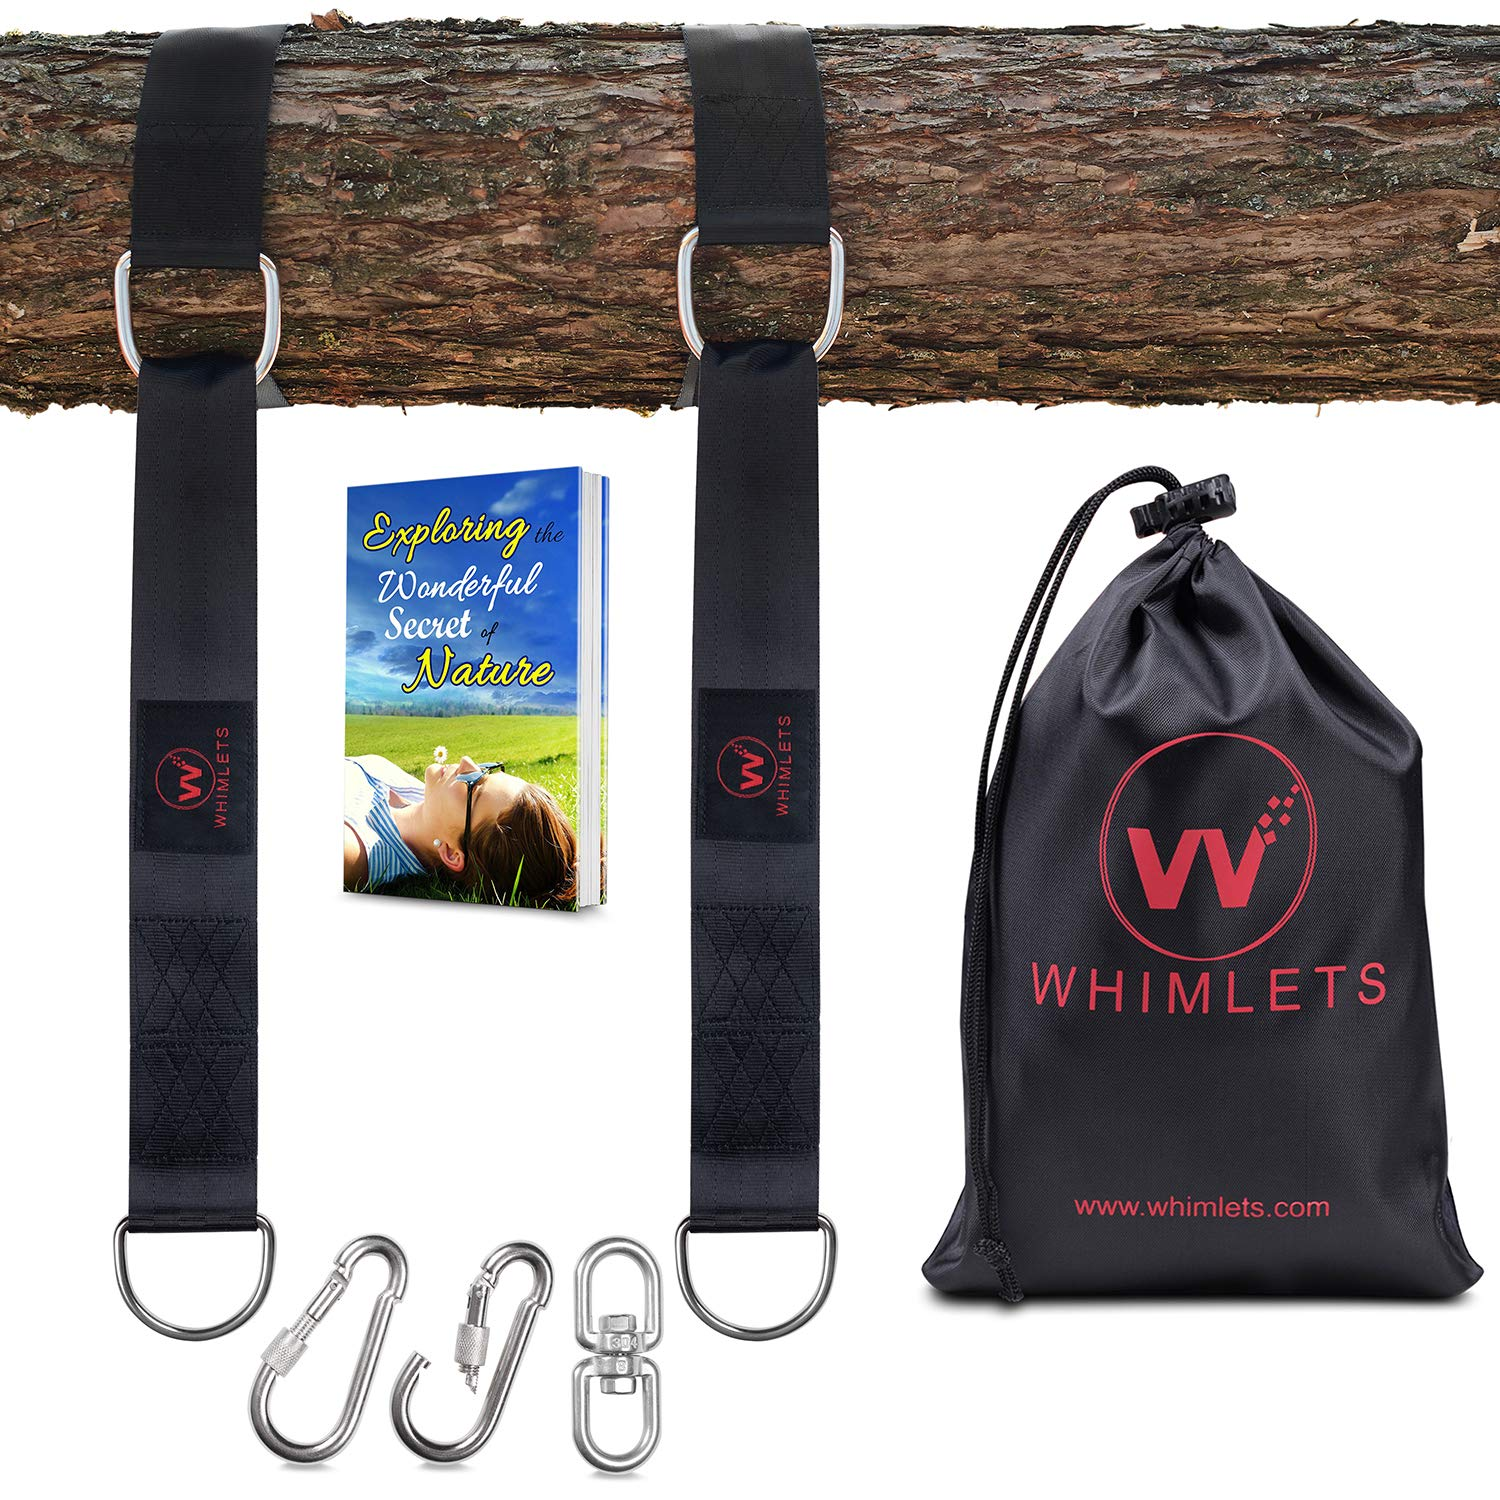 Whimlets Tree Swing Straps Hanging Kit - 2 Straps Perfect for Tree Swings and Hammocks(10ft Black) by Whimlets